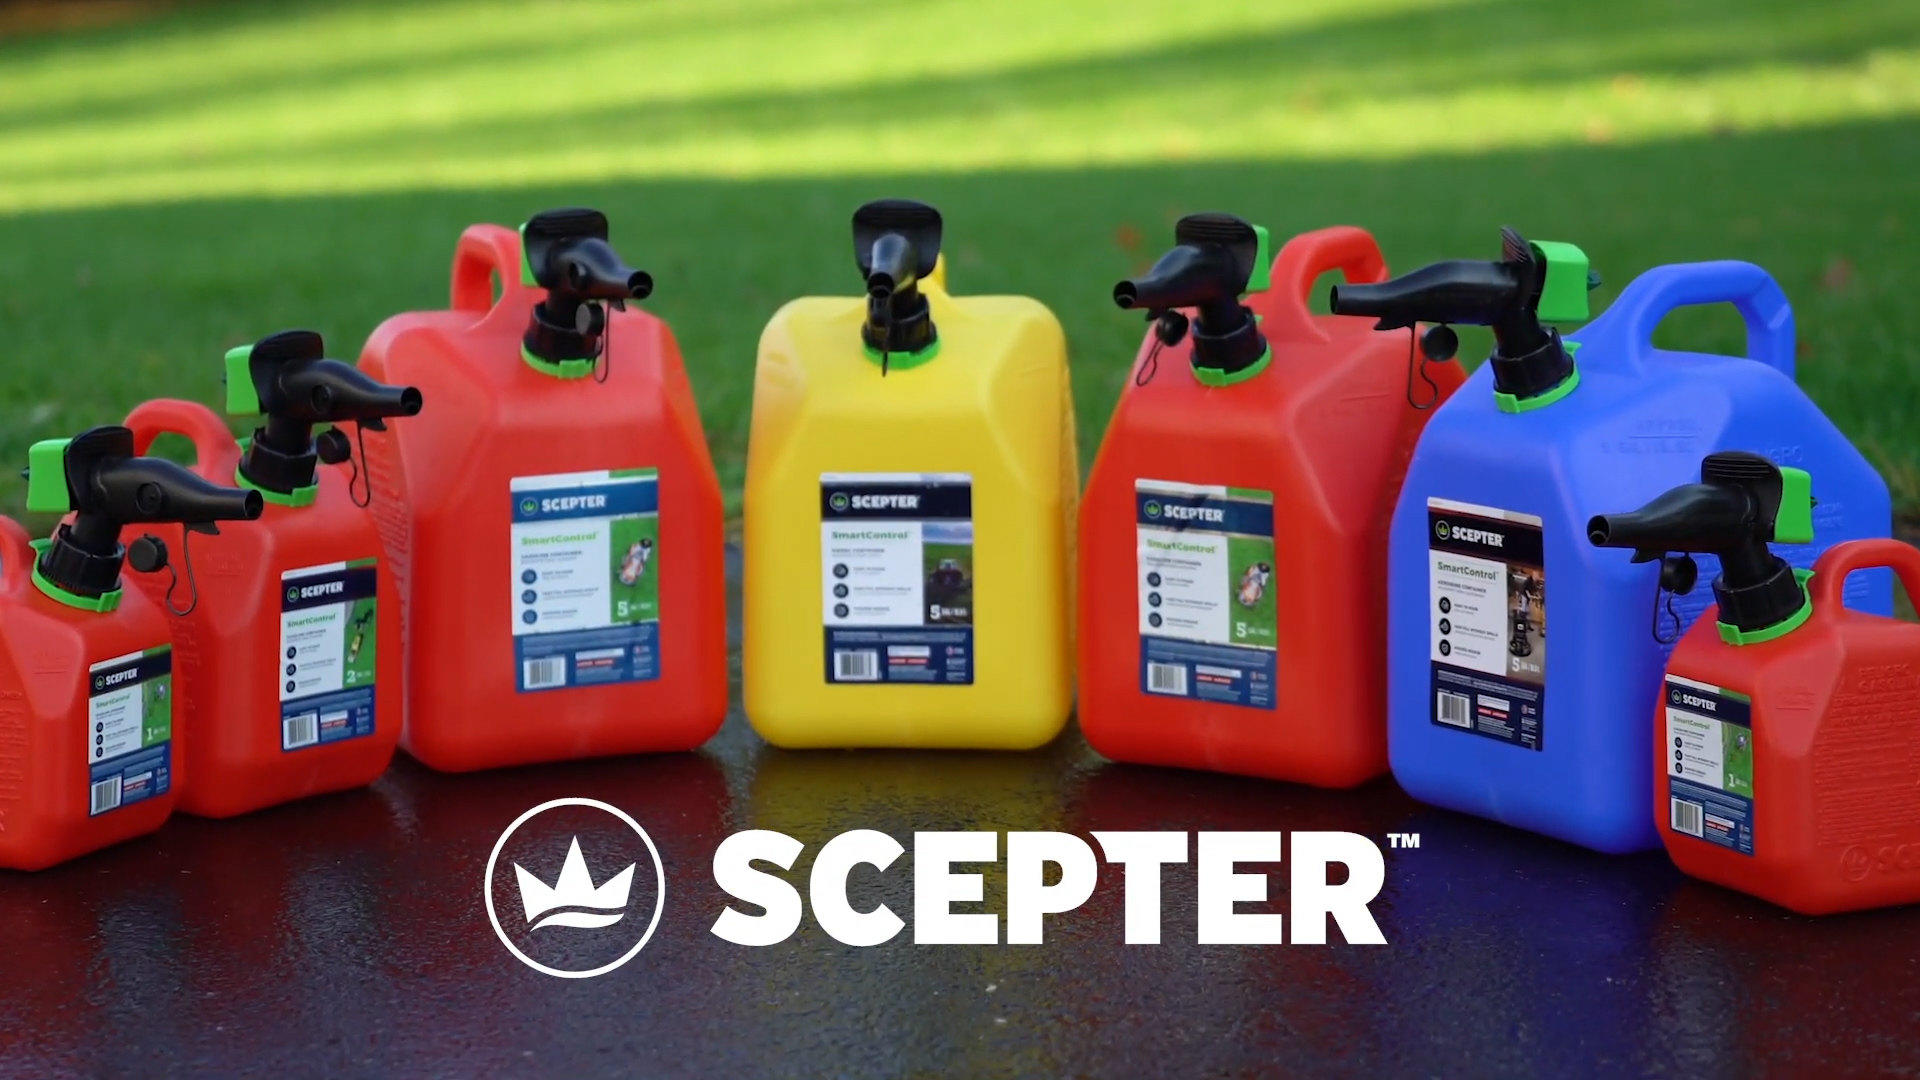 Scepter can help when leaves clean-up relies on fuel 8